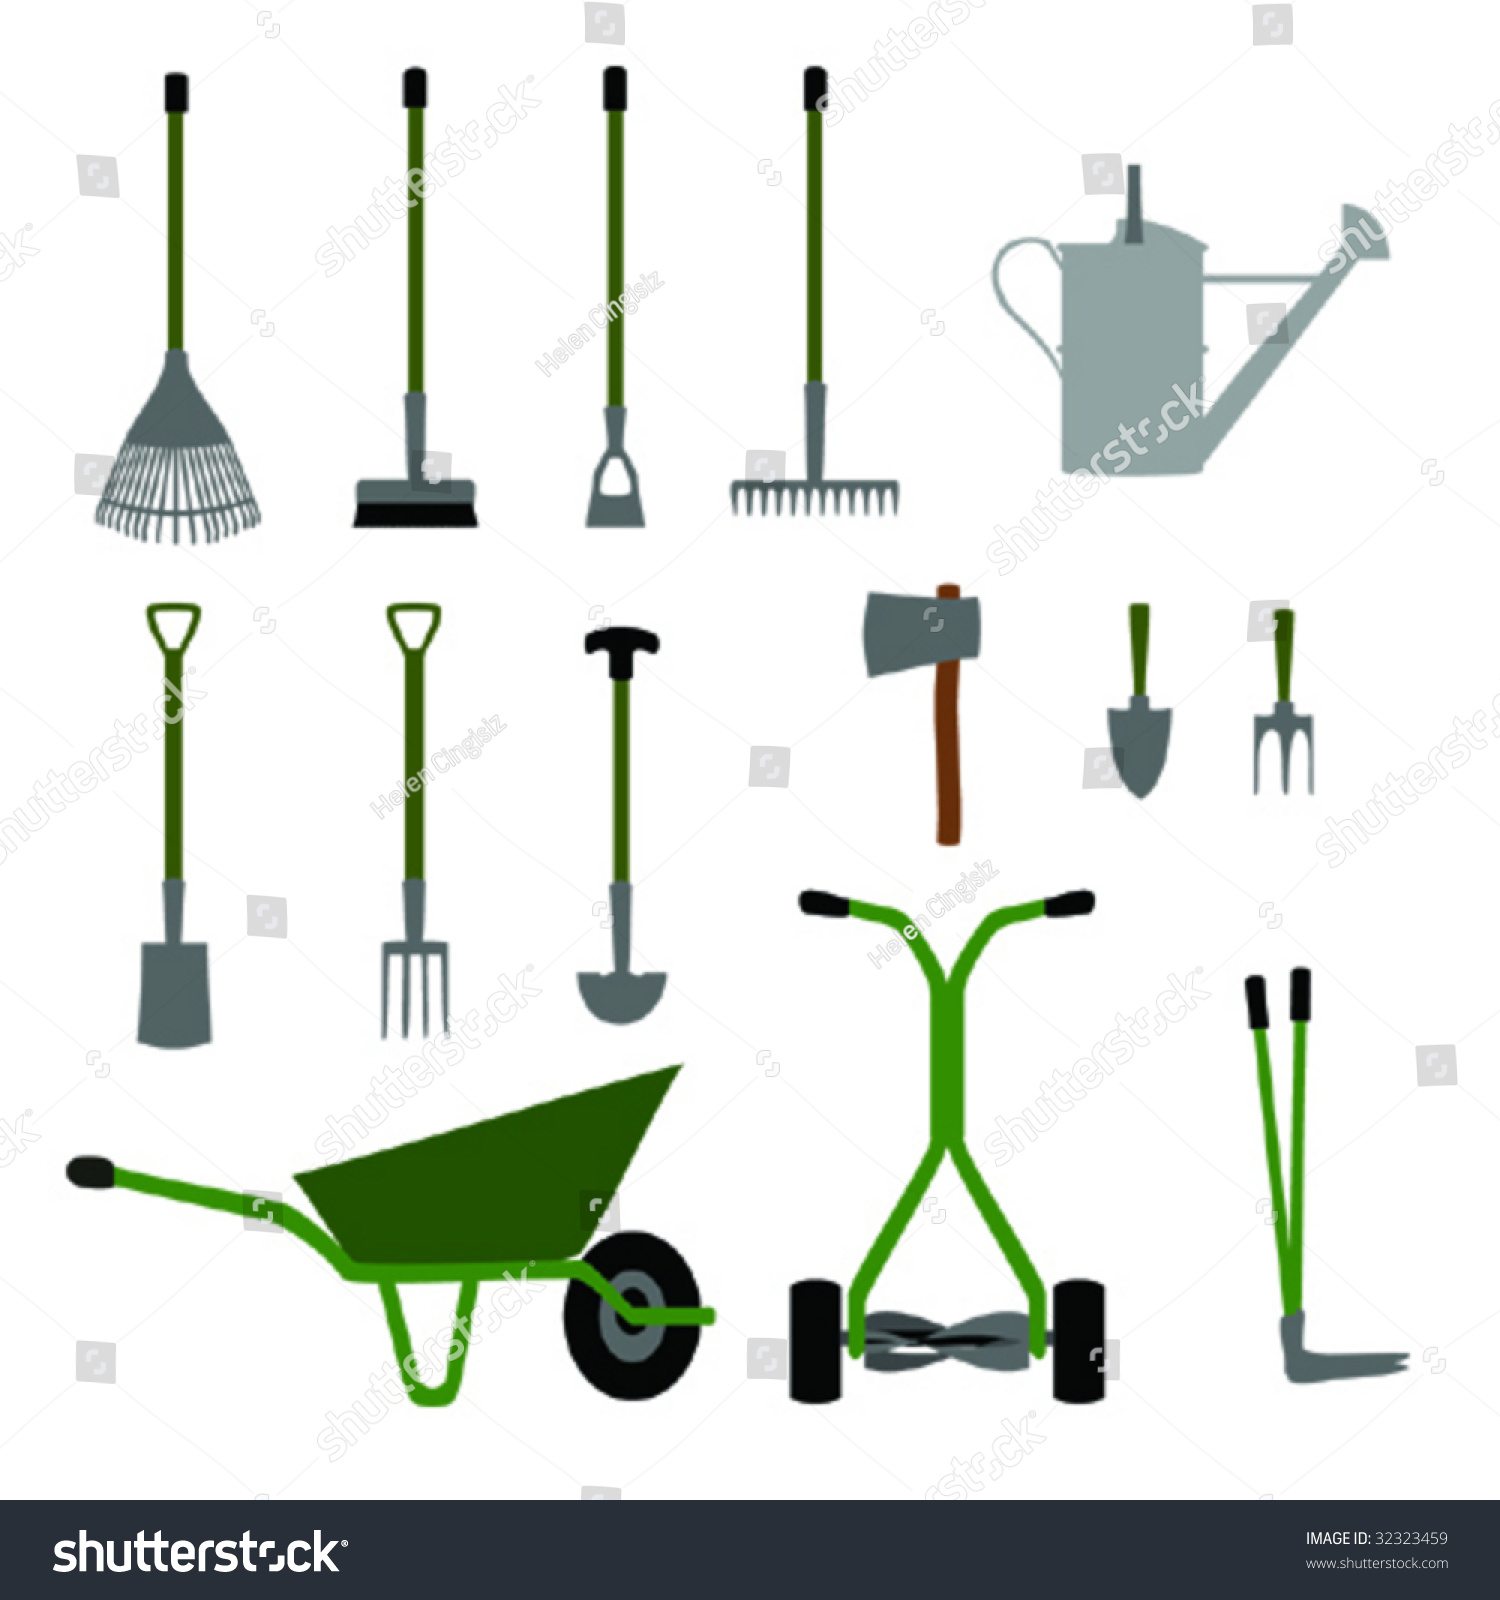 Gardening tools and equipment set no 1 stock vector for Gardening tools list with pictures